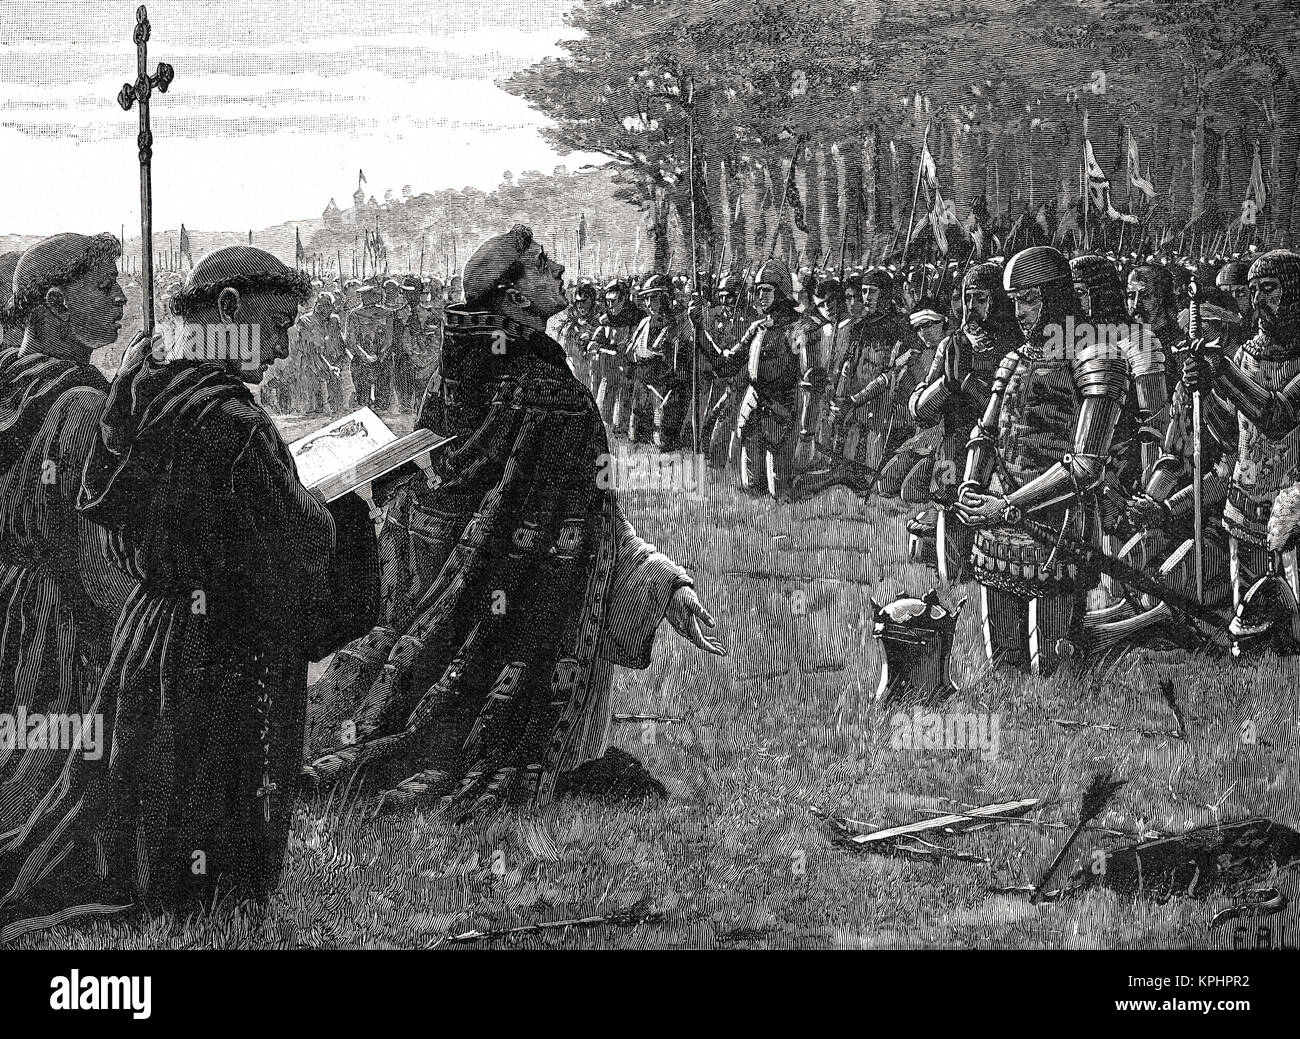 Thanksgiving service, Battle of Agincourt, Saint Crispin's Day, 25 October 1415 - Stock Image